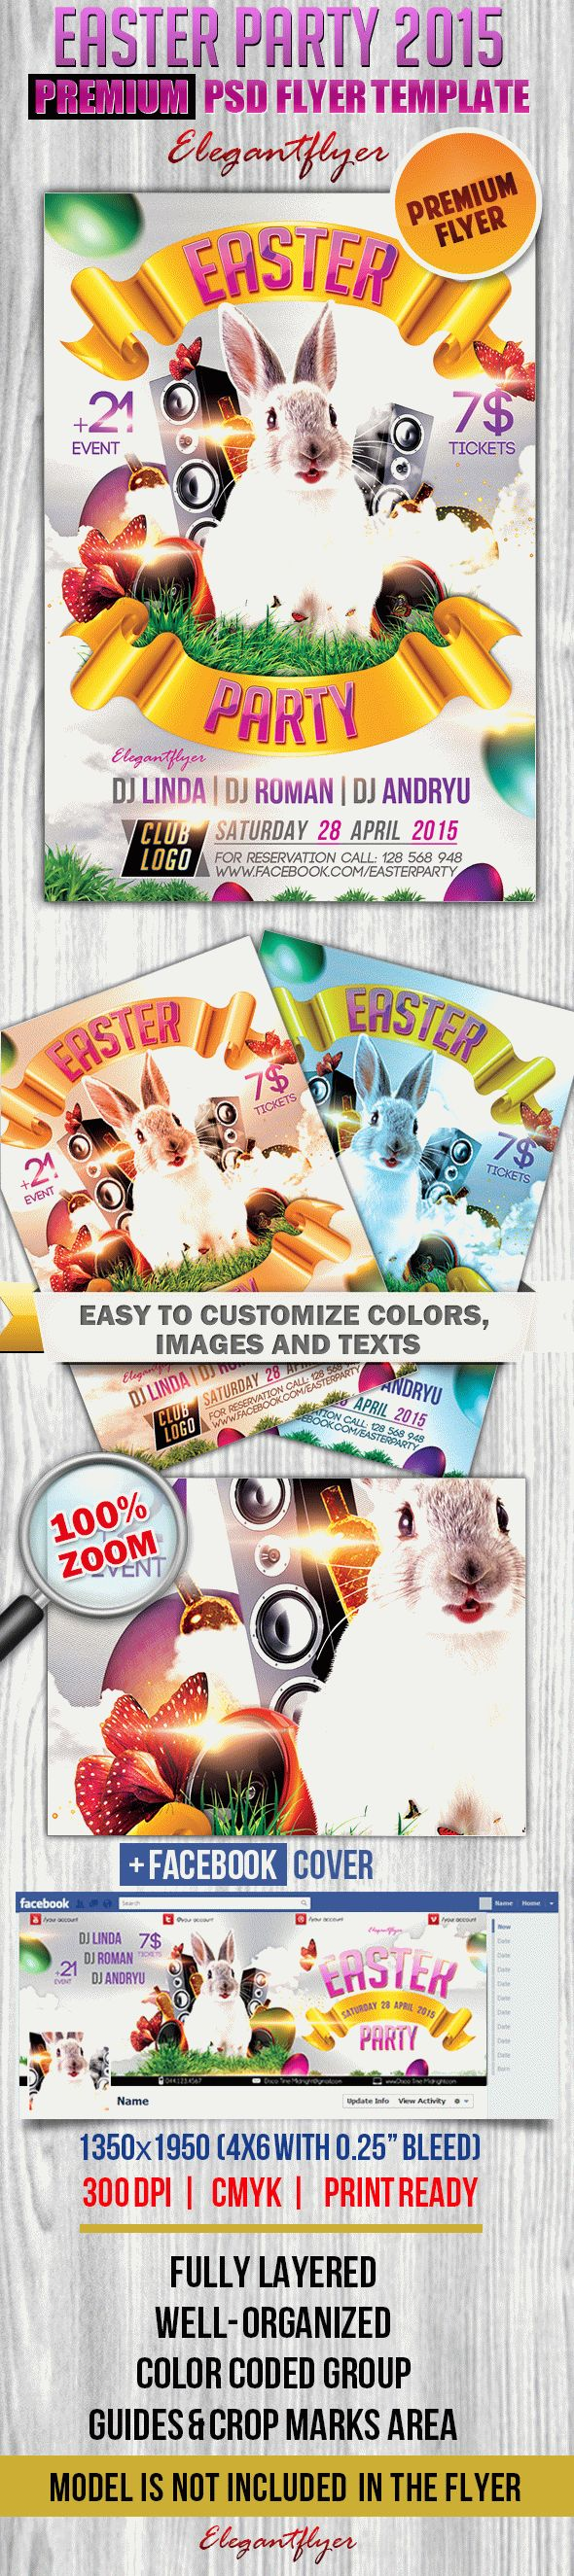 Easter party 2015 – Flyer PSD Template + Facebook Cover